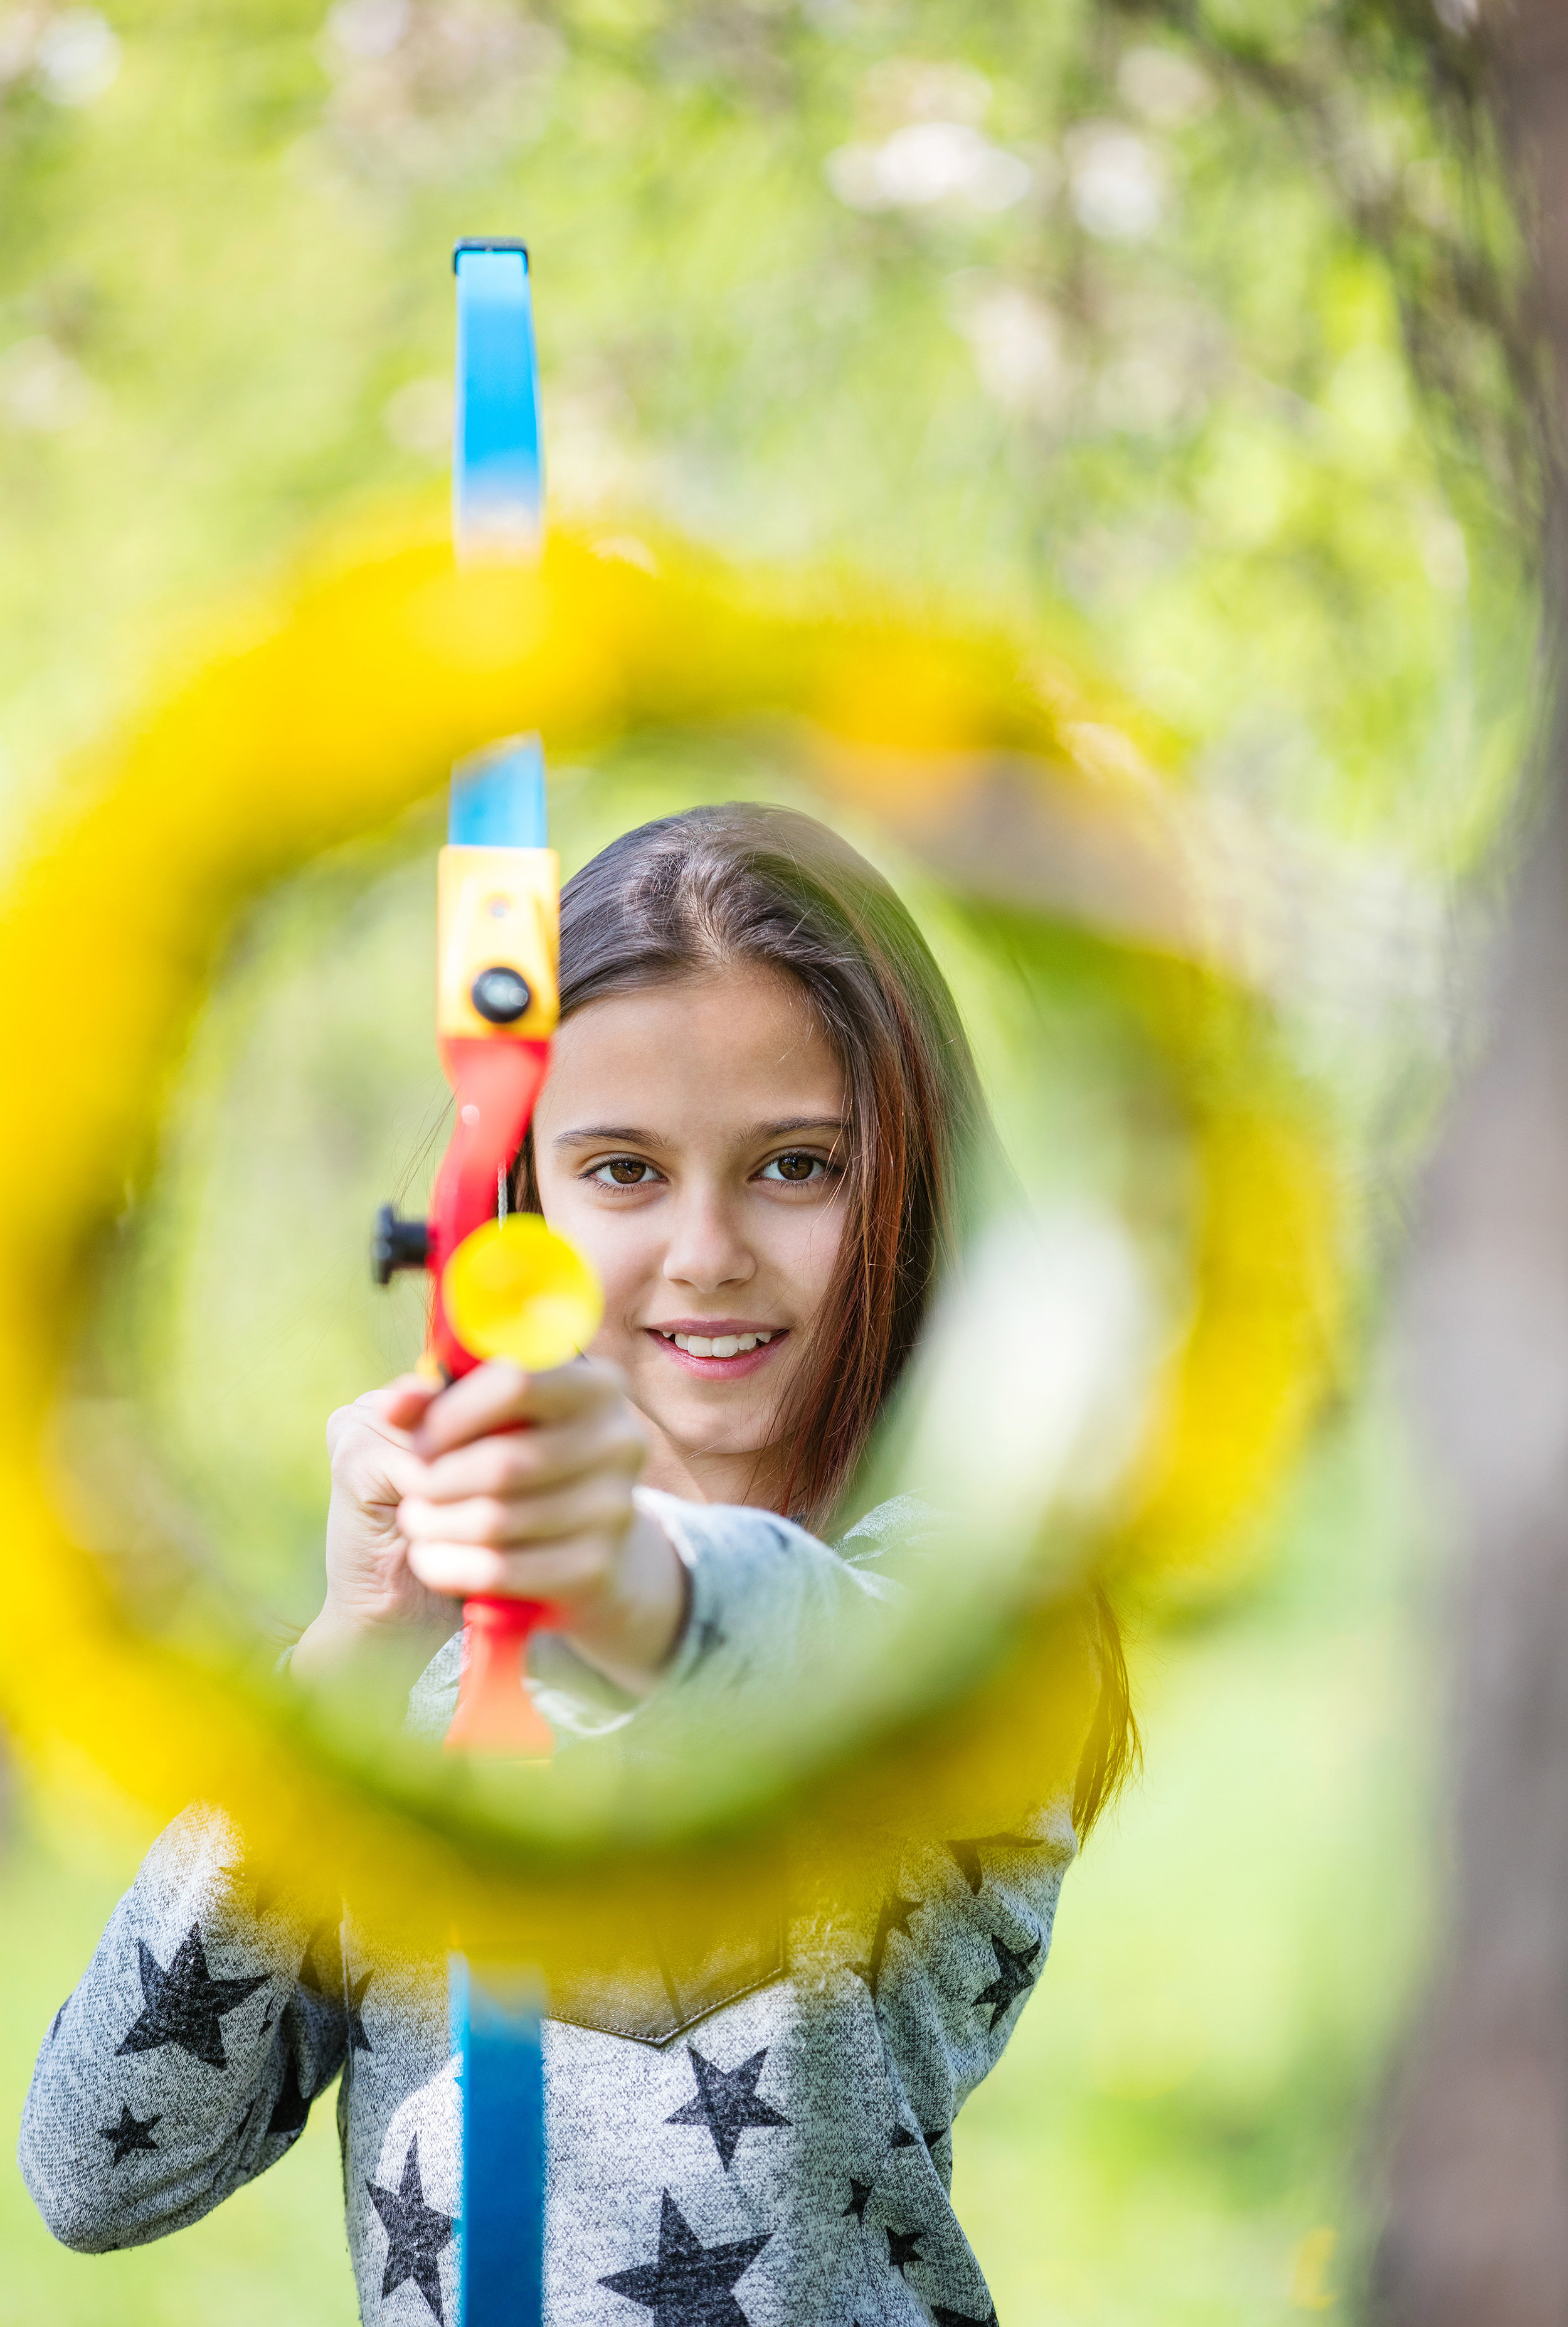 young-girl-archer-with-bow-aiming-through-flower-PCE9N9Q.jpg